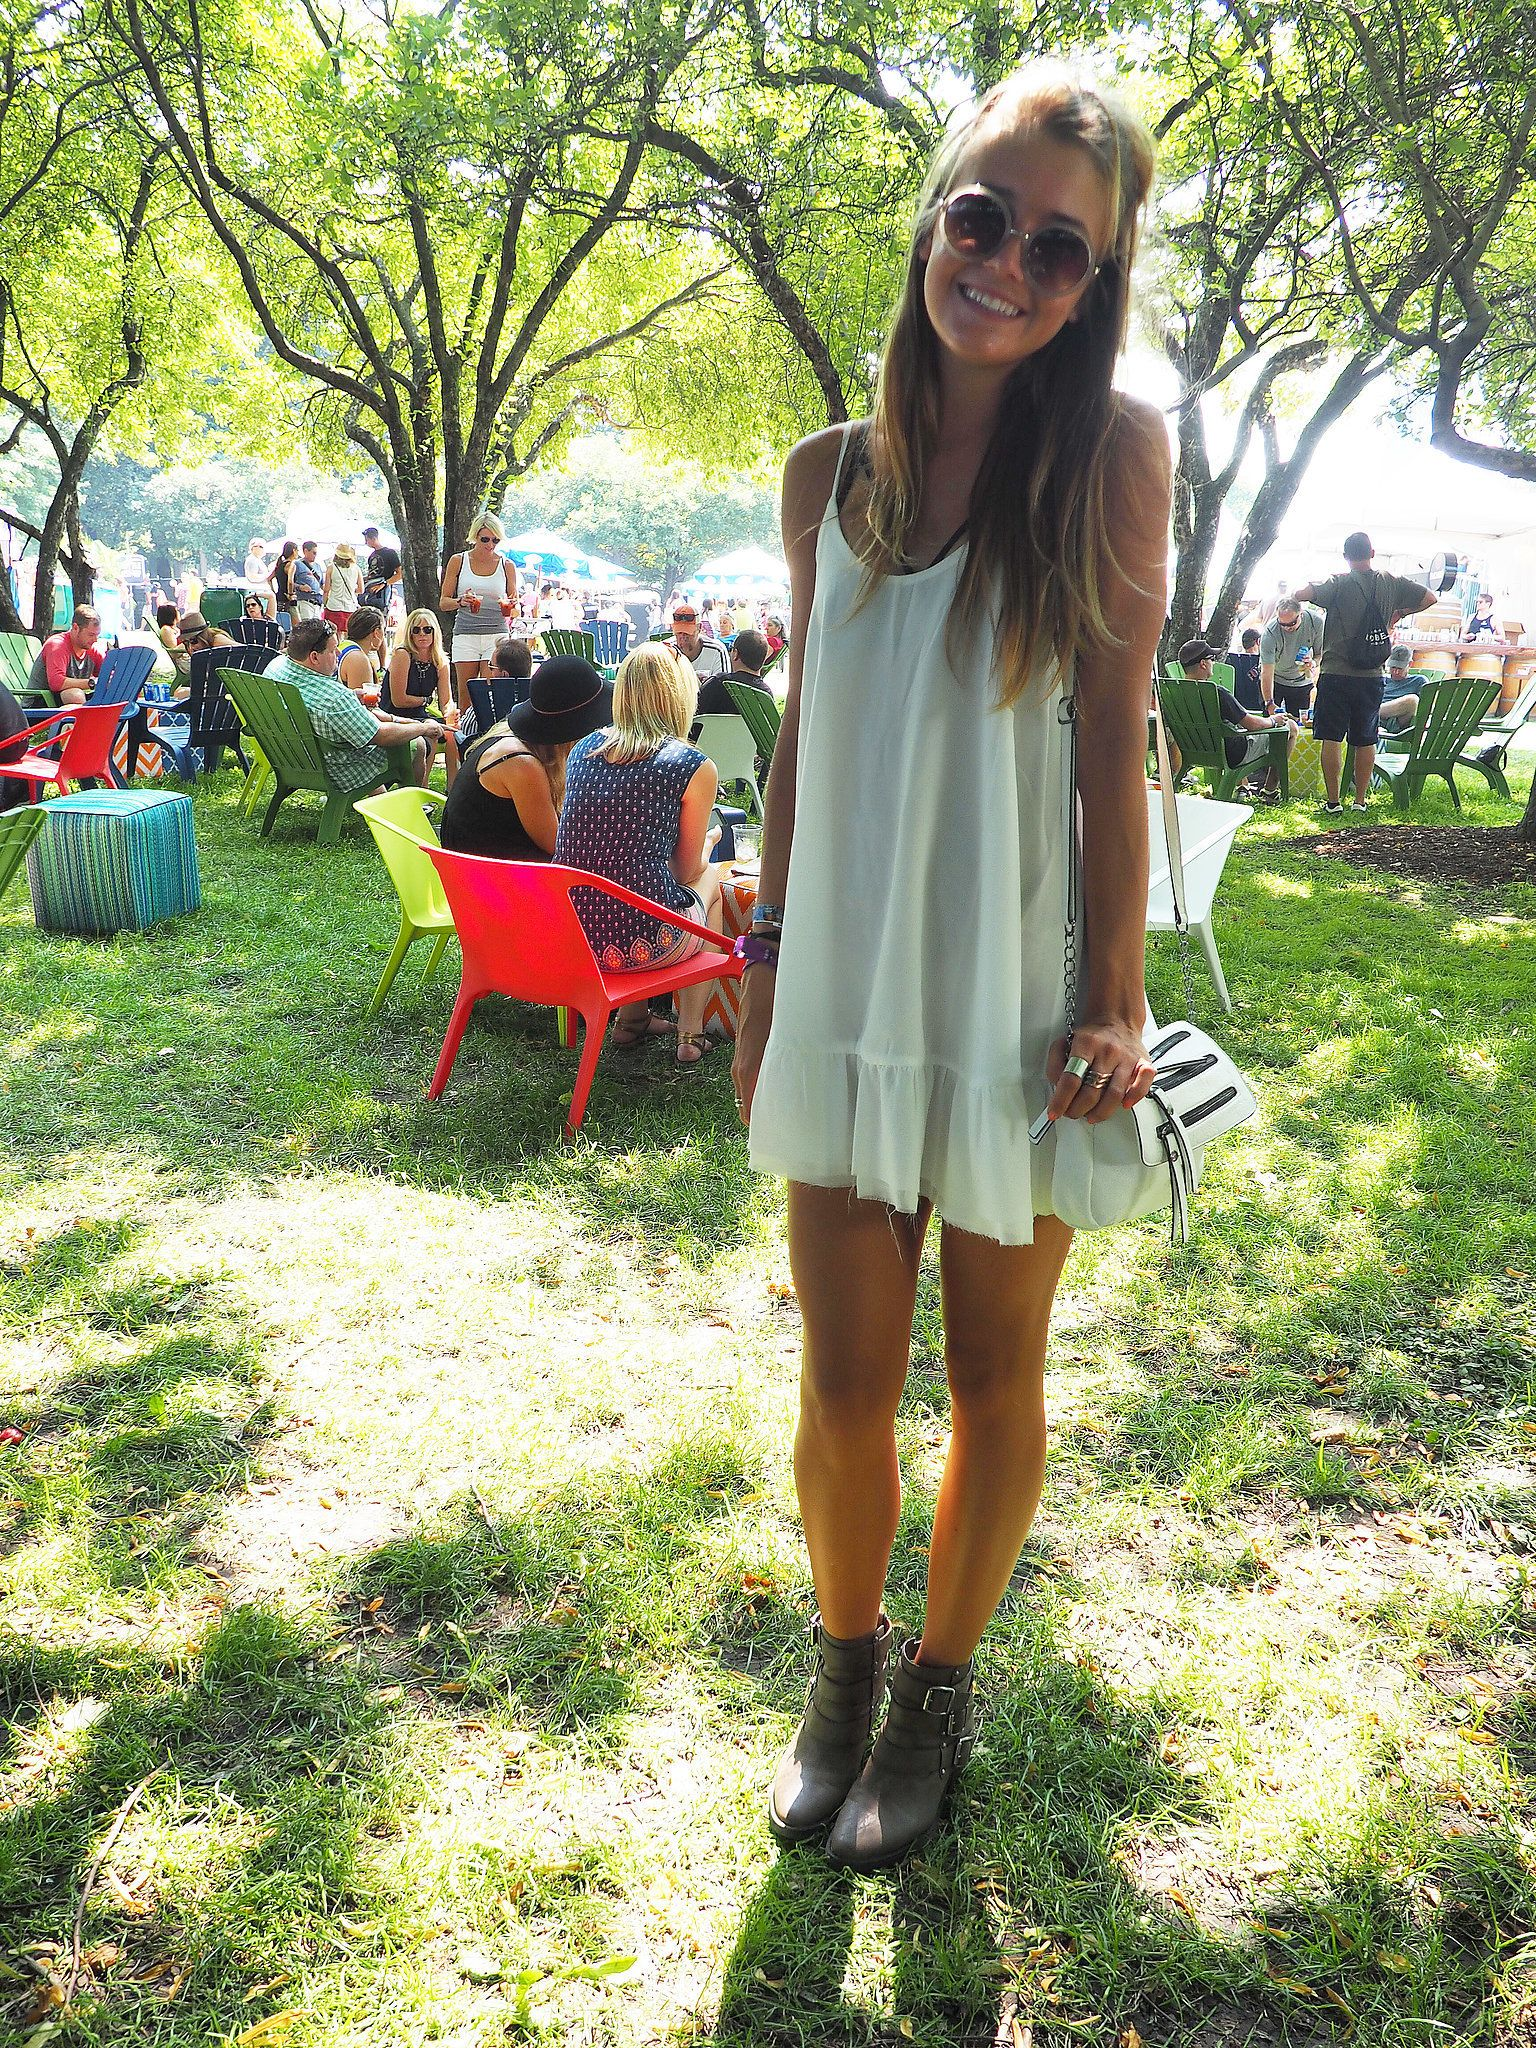 best images about festival on pinterest splendour in the grass